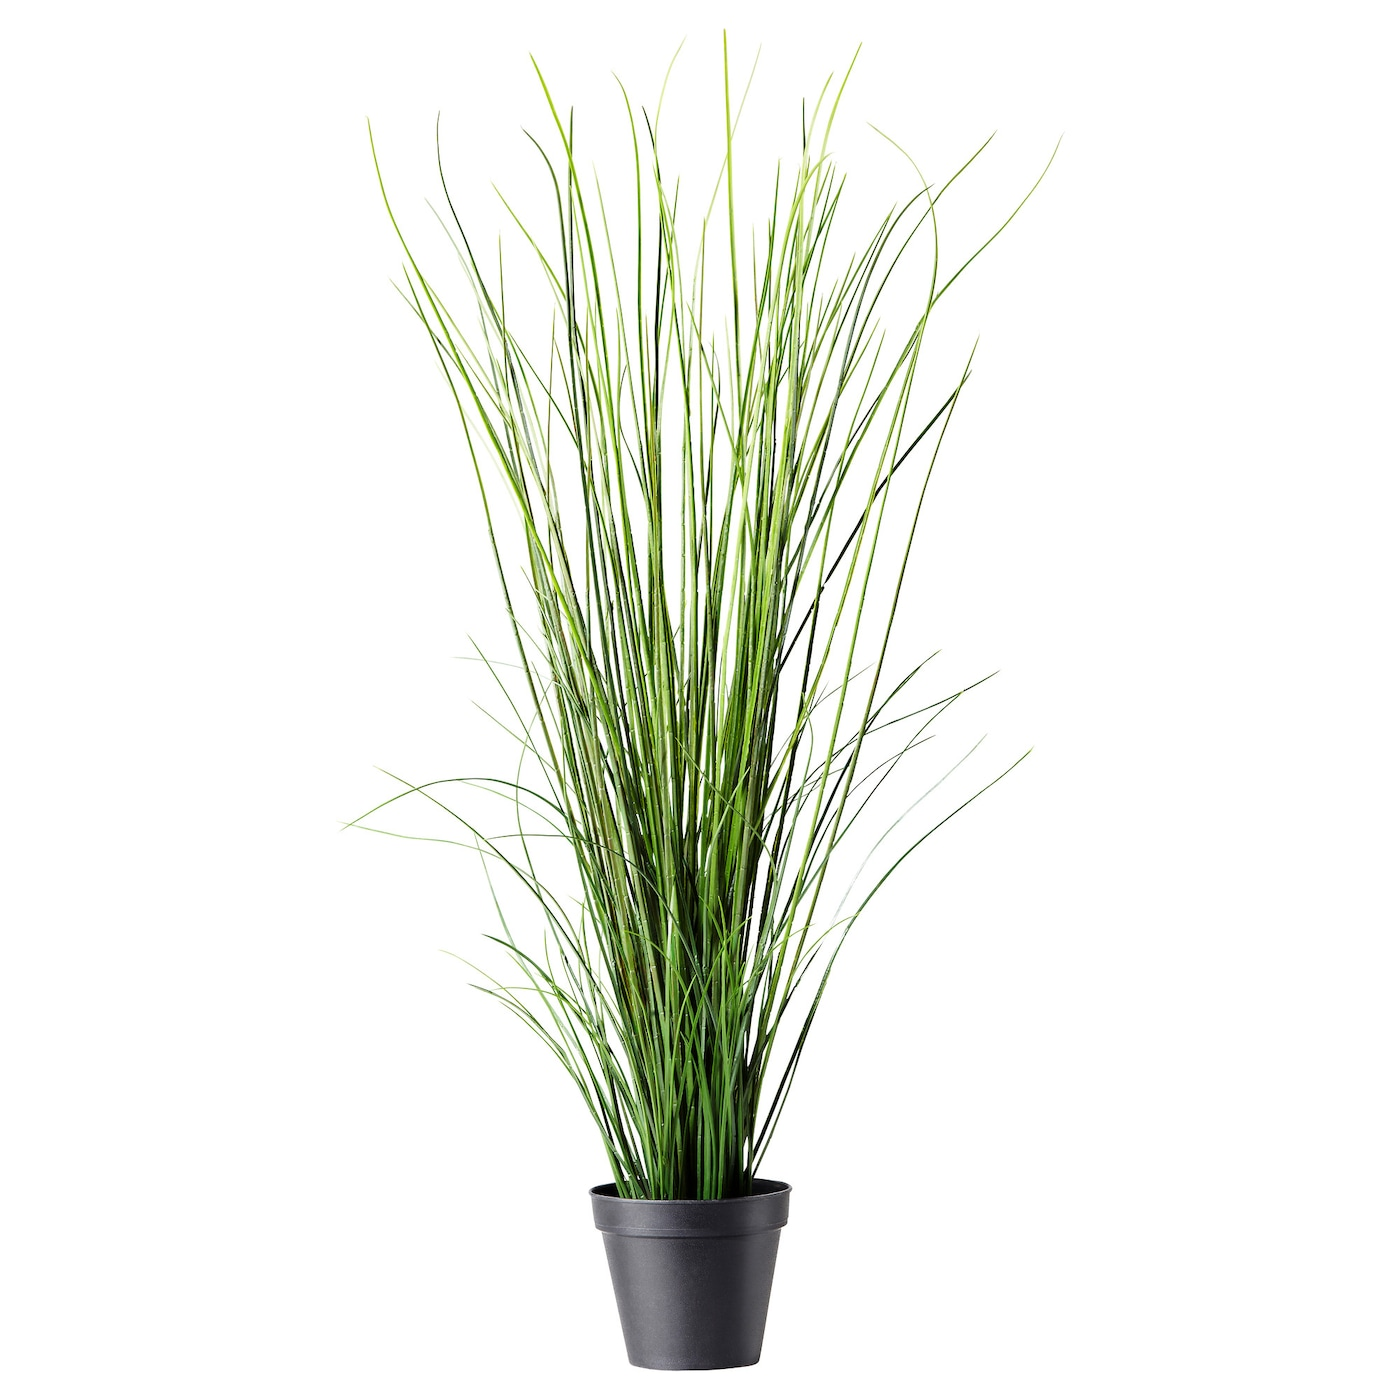 Artificial flowers plants ikea ireland dublin for Ornamental grasses that stay green all year